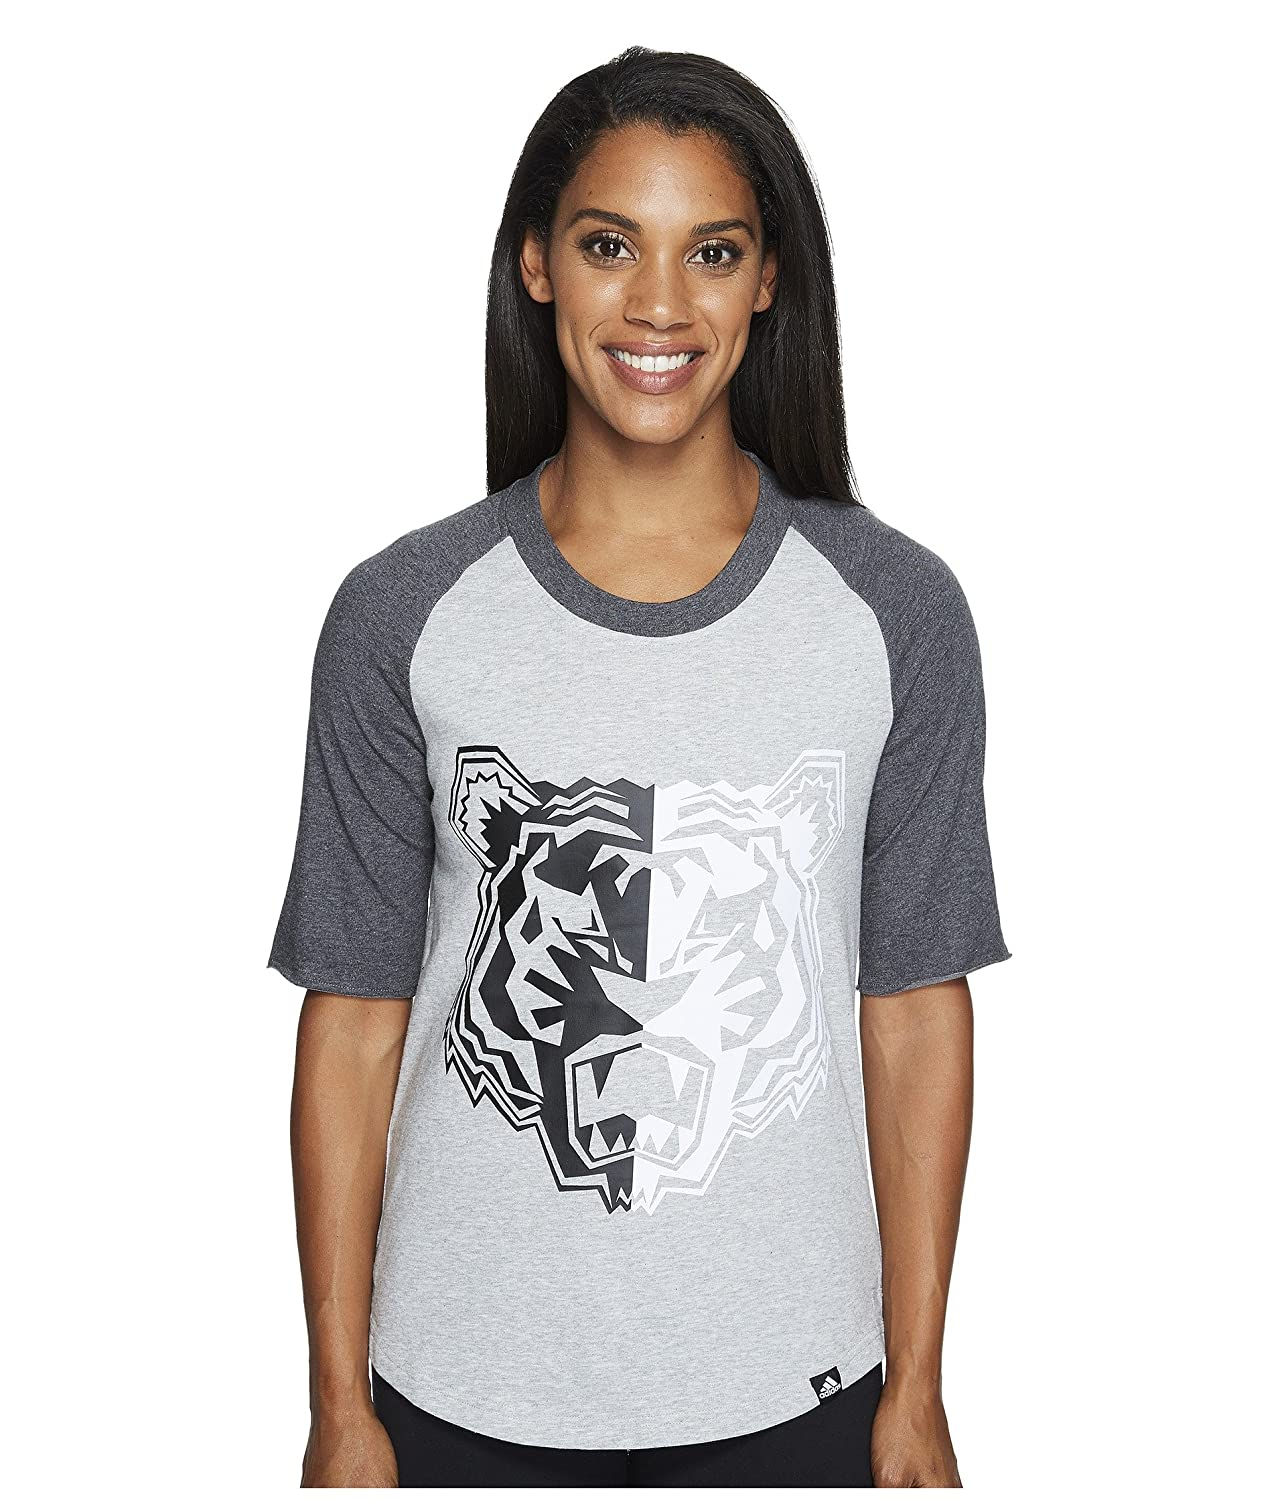 Medium Grey Heather Dark Grey Heather Adi Tiger Large adidas Women's Badge of Sport Logo Tee